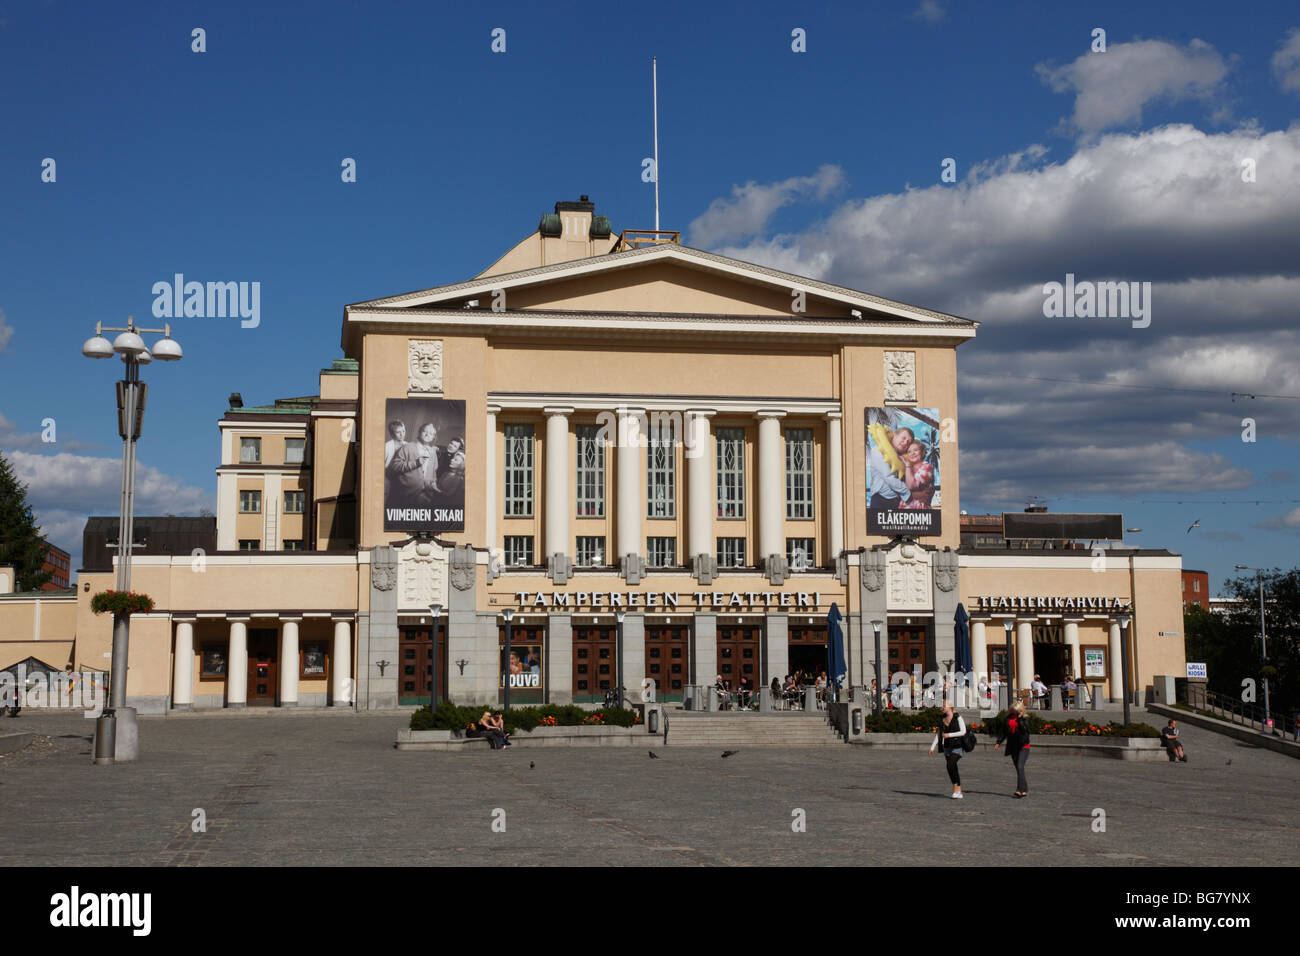 Finland, Region of Pirkanmaa, Tampere, City, Central Square, Neo-Classical Tampere Theatre Stock Photo